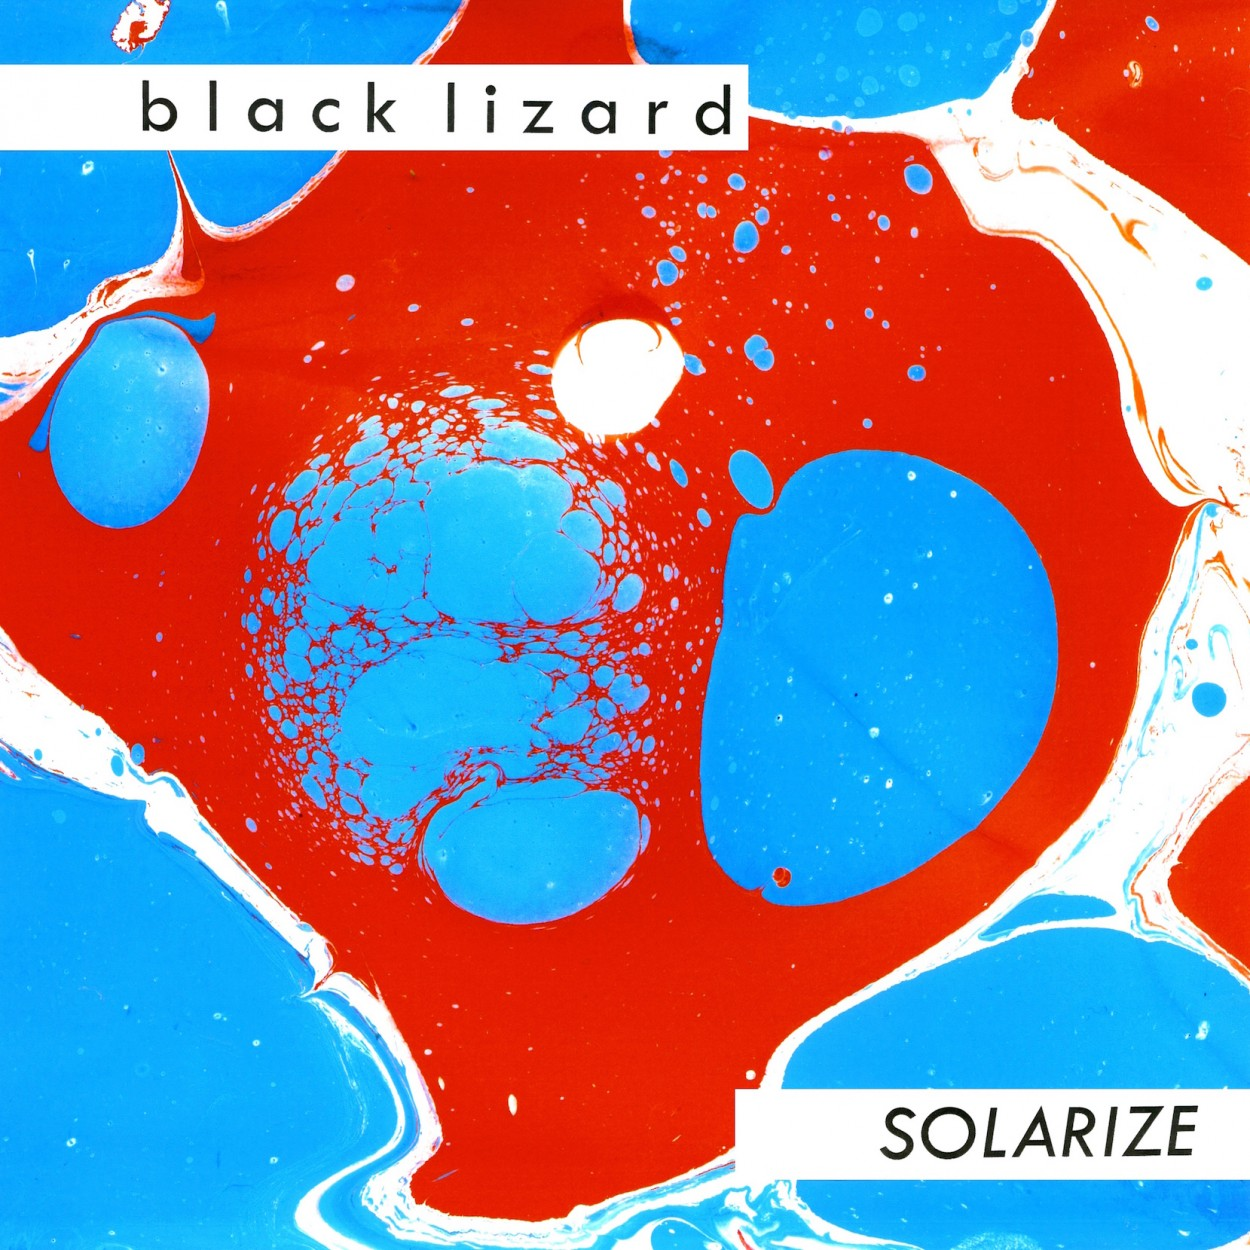 Black Lizard – Solarize